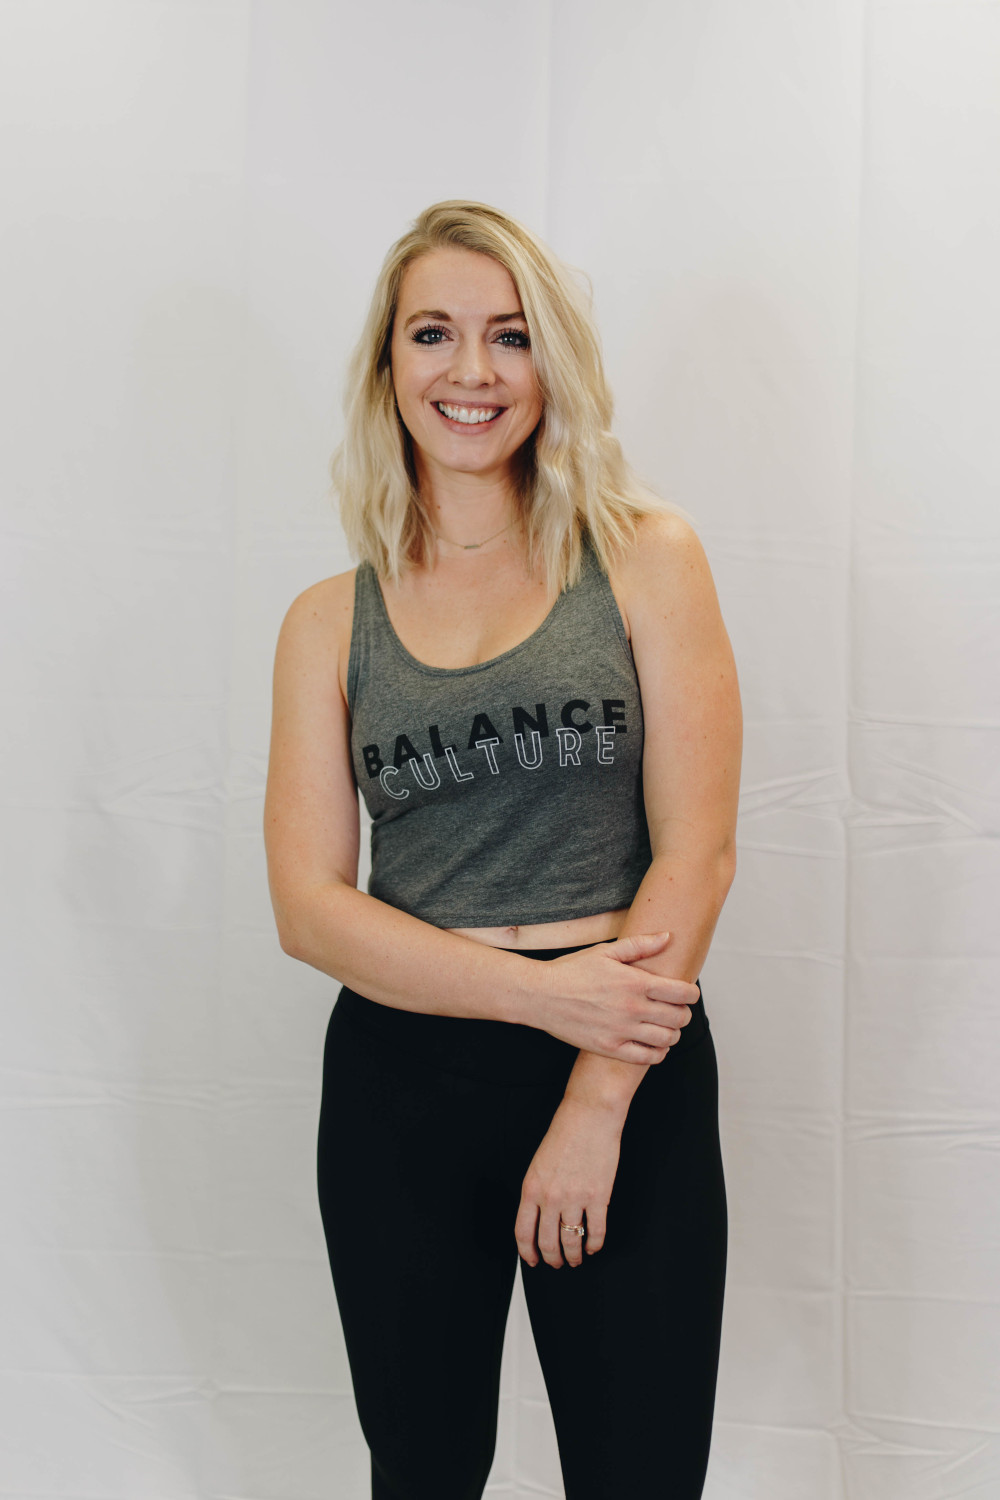 The Grey Crop | The Collection by The Balance Culture | Women's Fitness Studio in Lakeland, FL